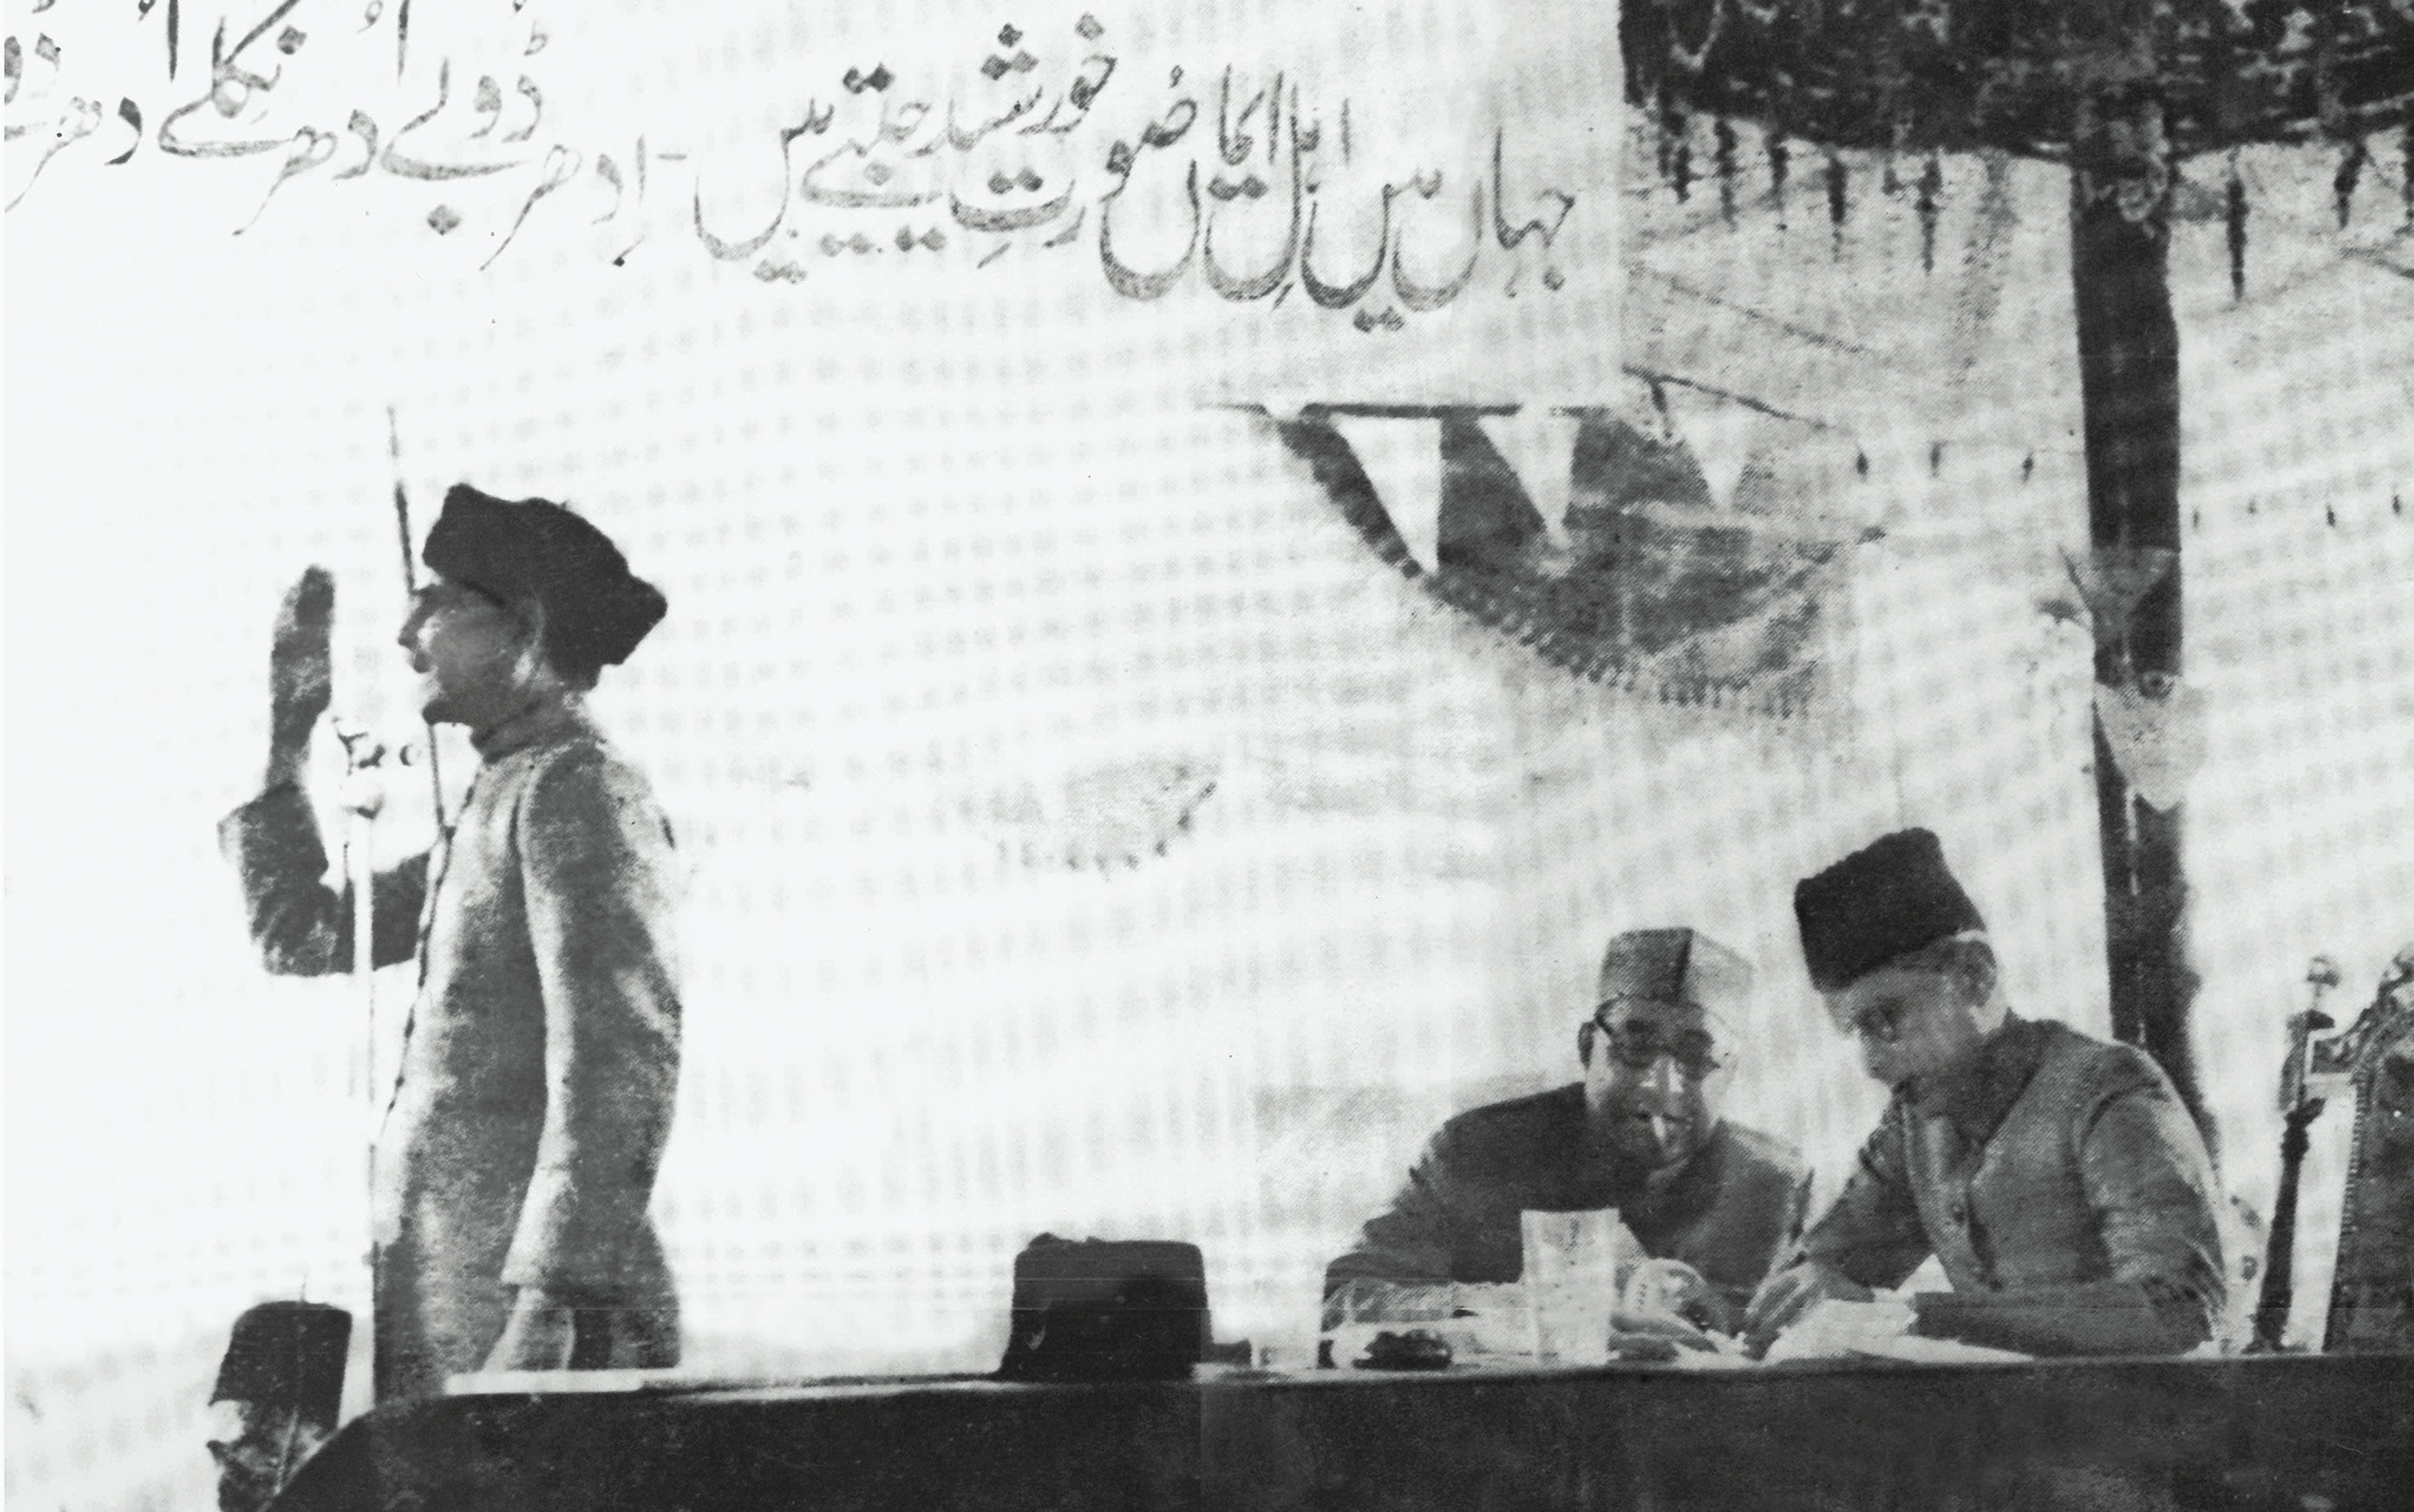 Quaid-i-Azam, Mohammad Ali Jinnah and Nawabzada Liaquat Ali Khan peruse the Lahore Resolution. — Courtesy Lahore Museum